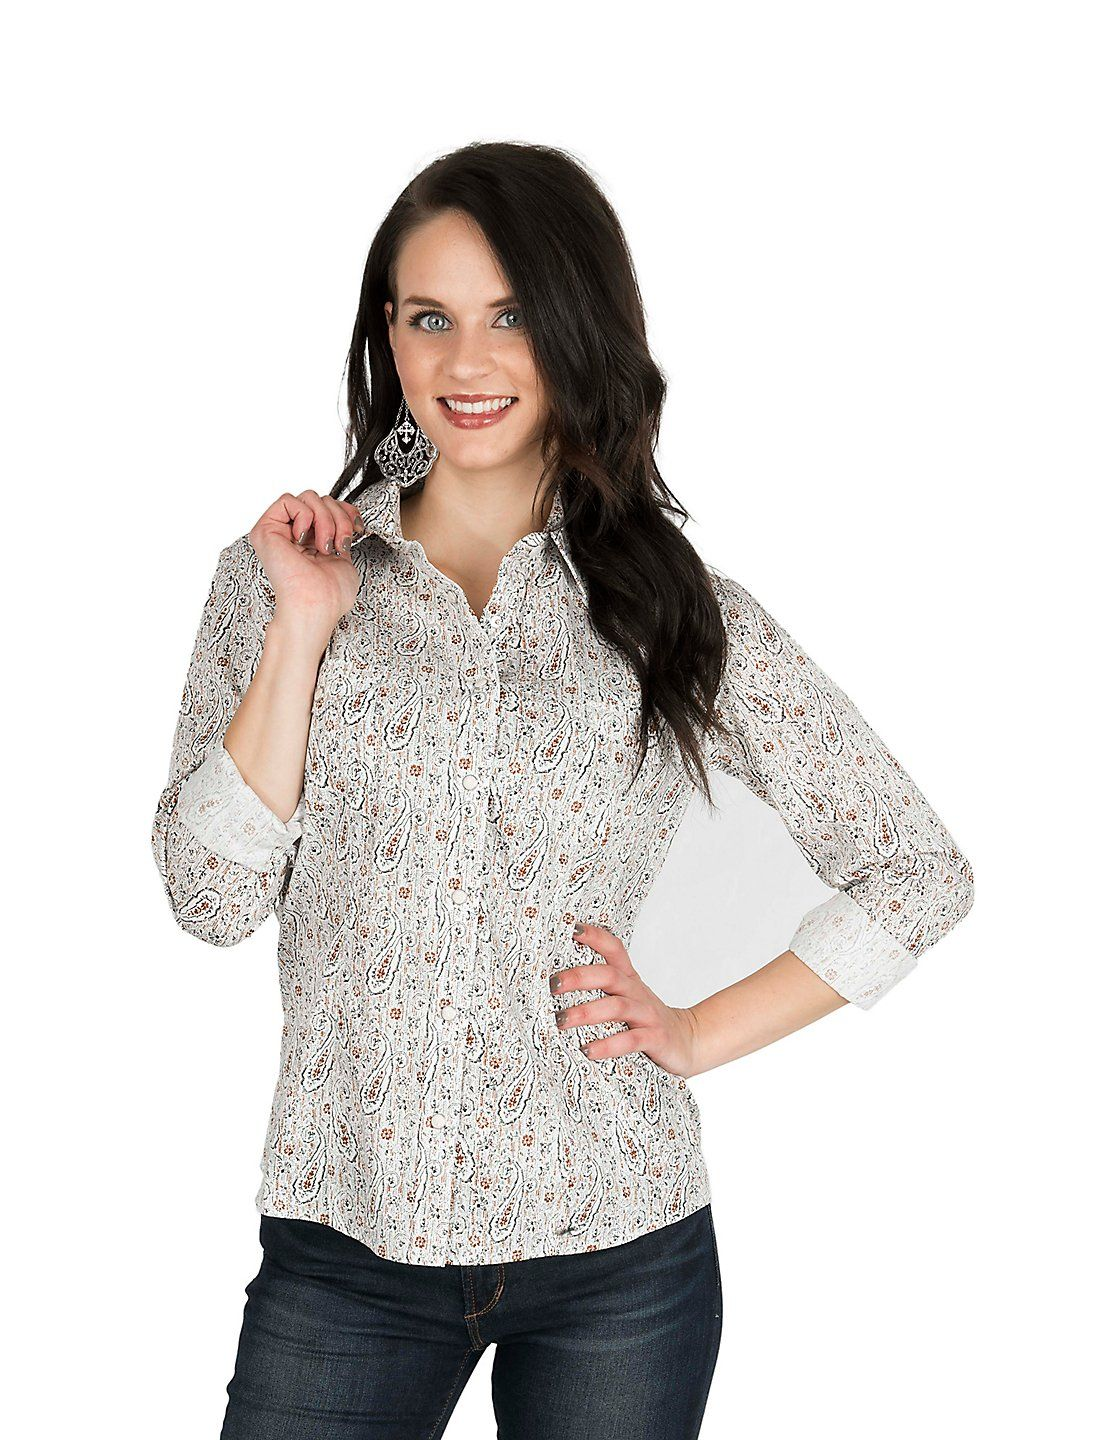 82f01d805bcd21 Panhandle Women's Cream, Rust, and Black Paisley Print Long Sleeve Western  Shirt | Cavender's